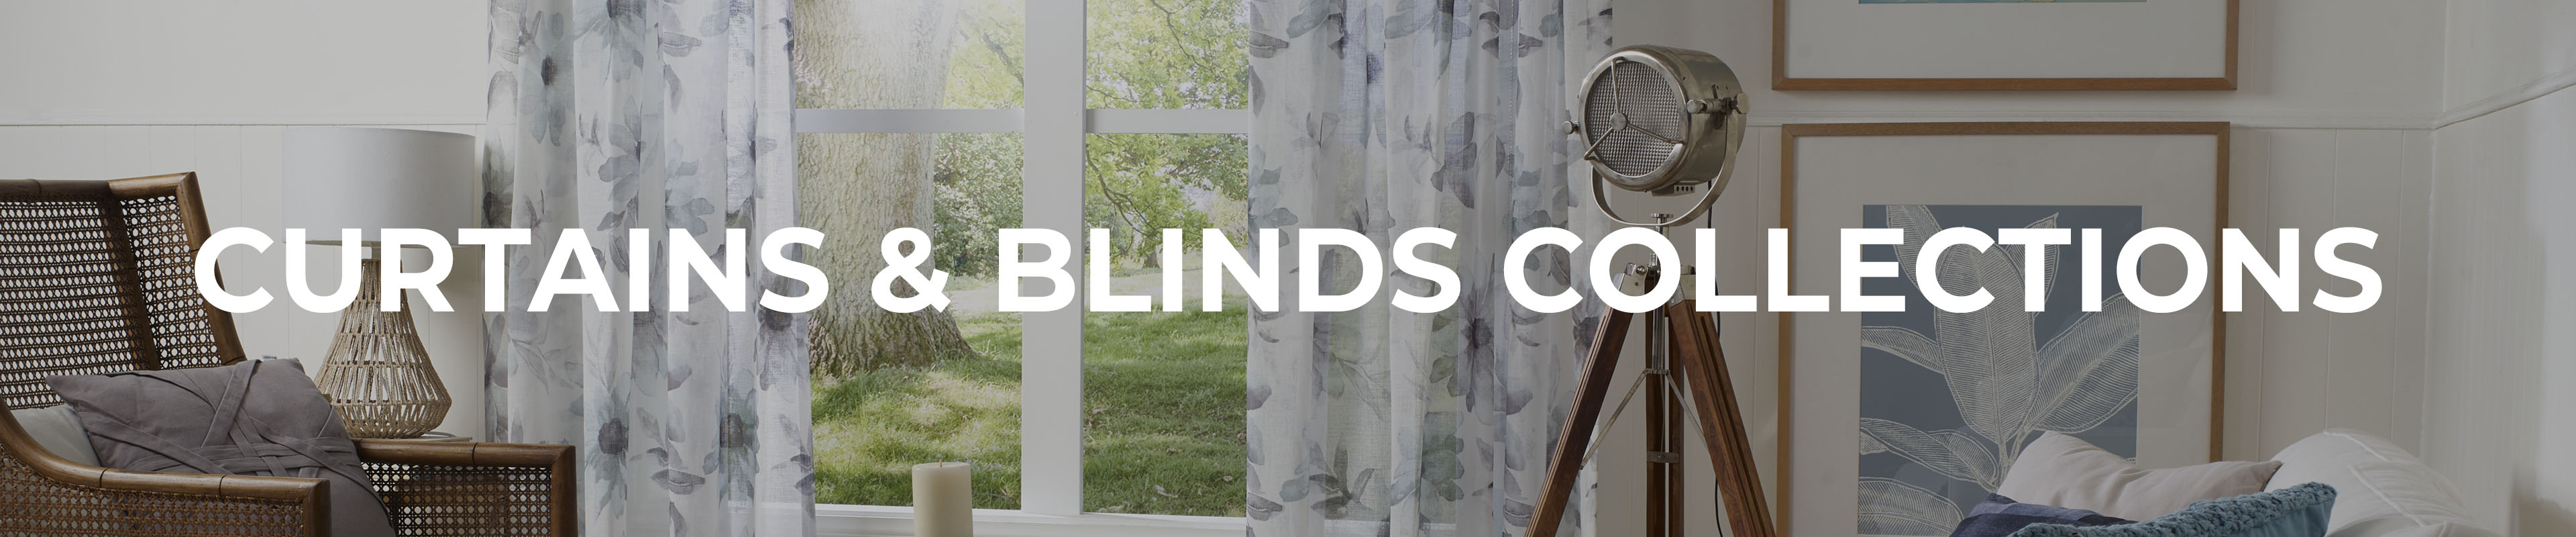 Shop Our Curtains & Blinds Collections